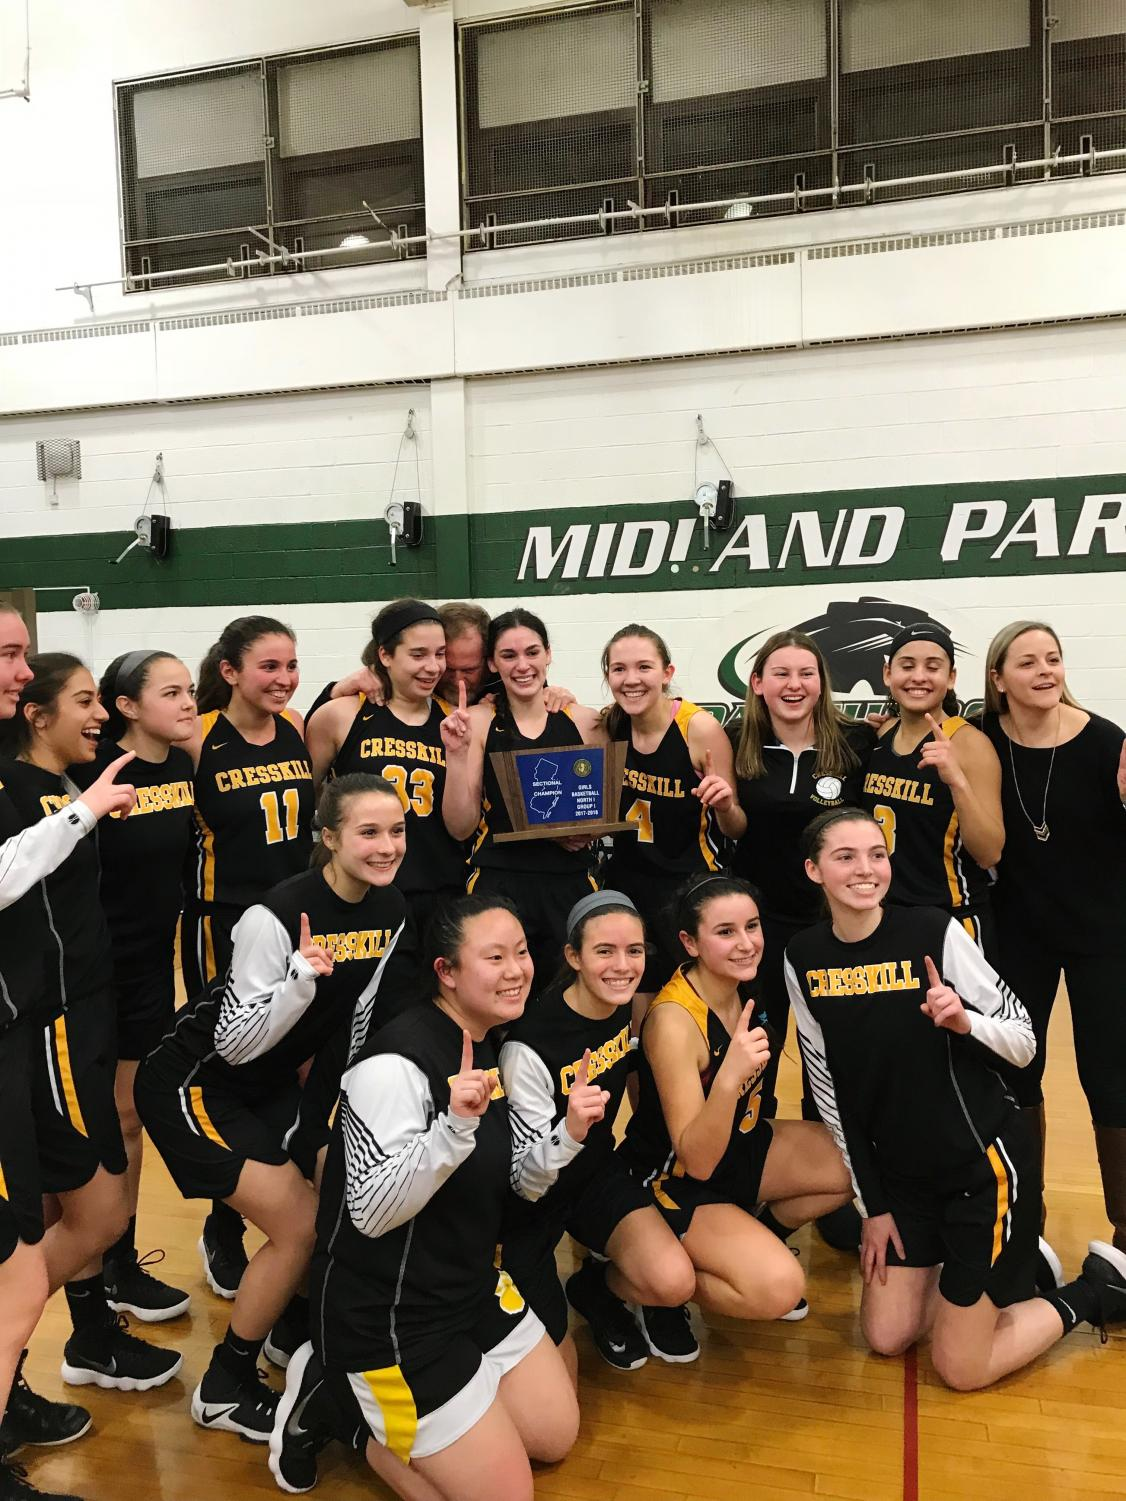 The 2017-2018 Girls Basketball team after their victory at Midland Park